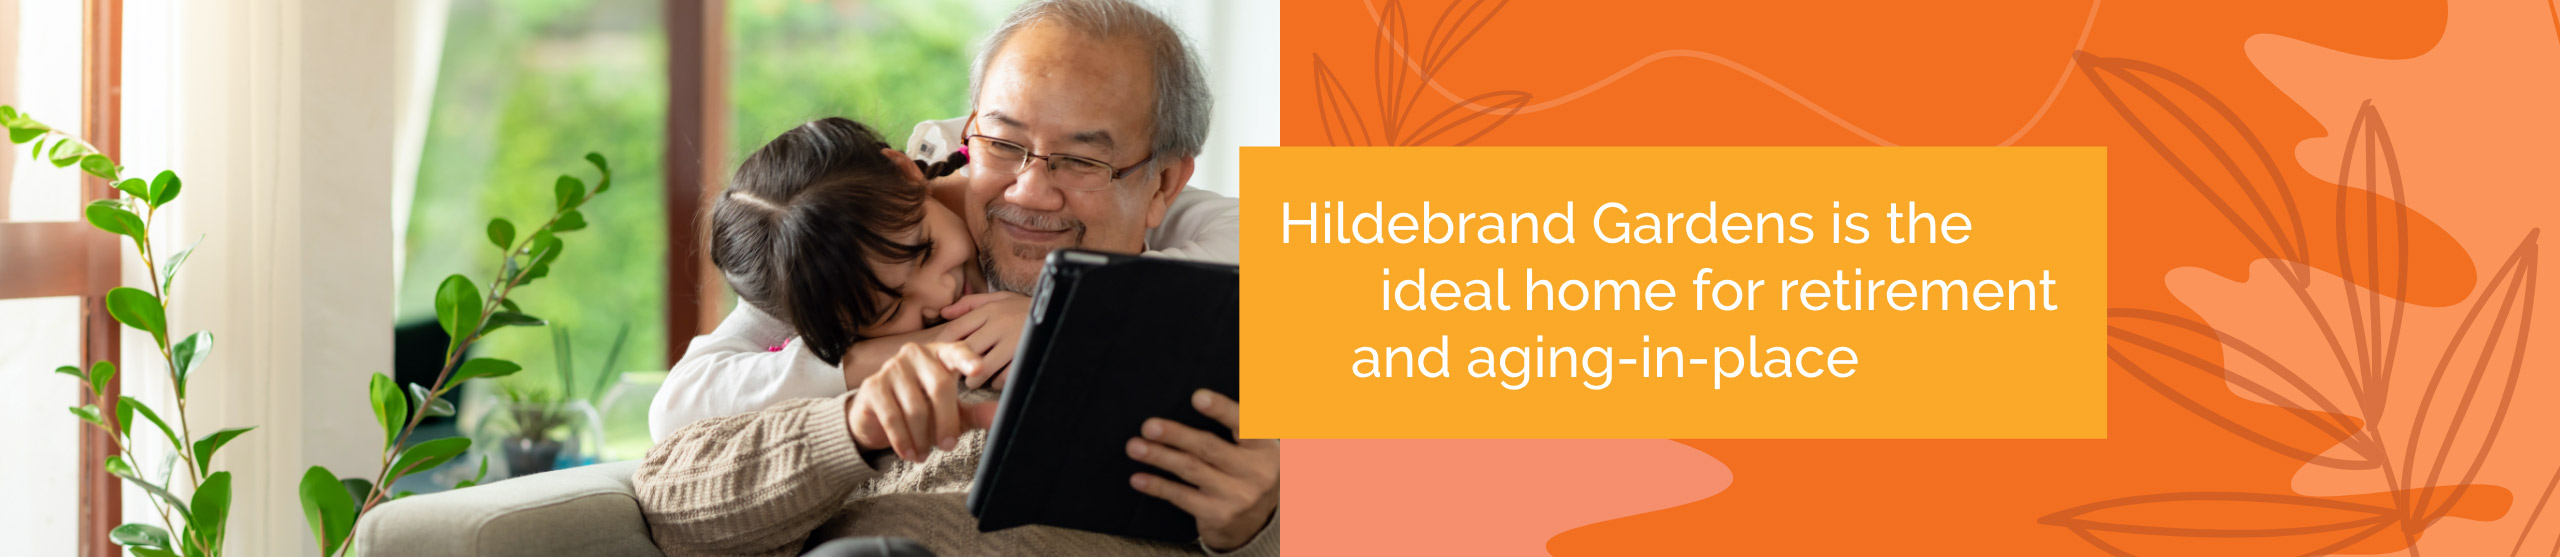 Hildebrand Gardens is the ideal home for retirement and aging-in-place.